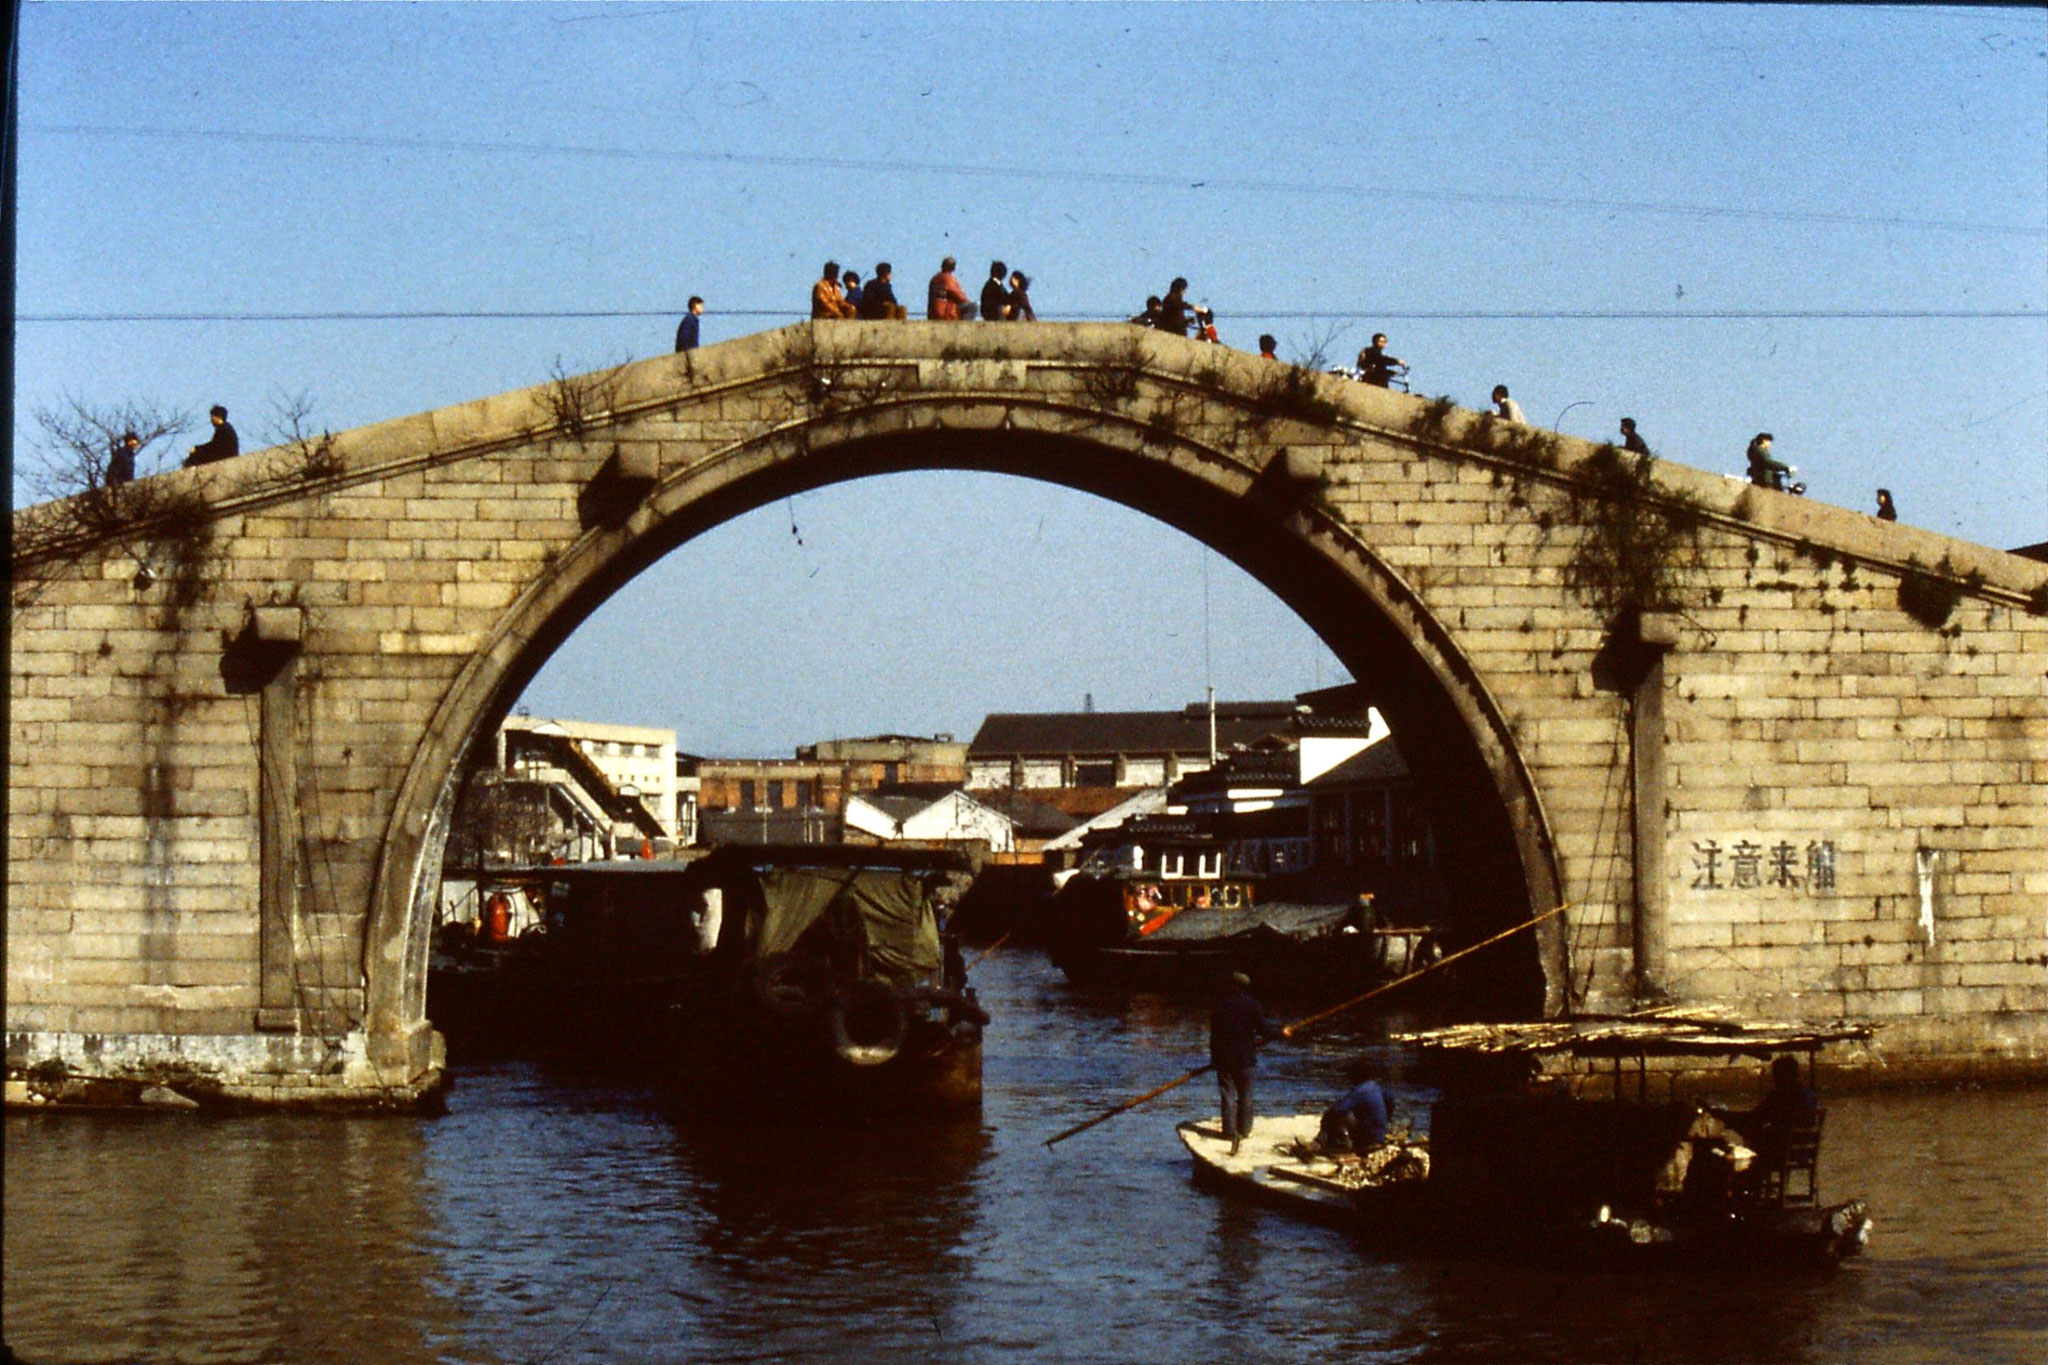 21/3/1989: 34: Suzhou Wumen Bridge